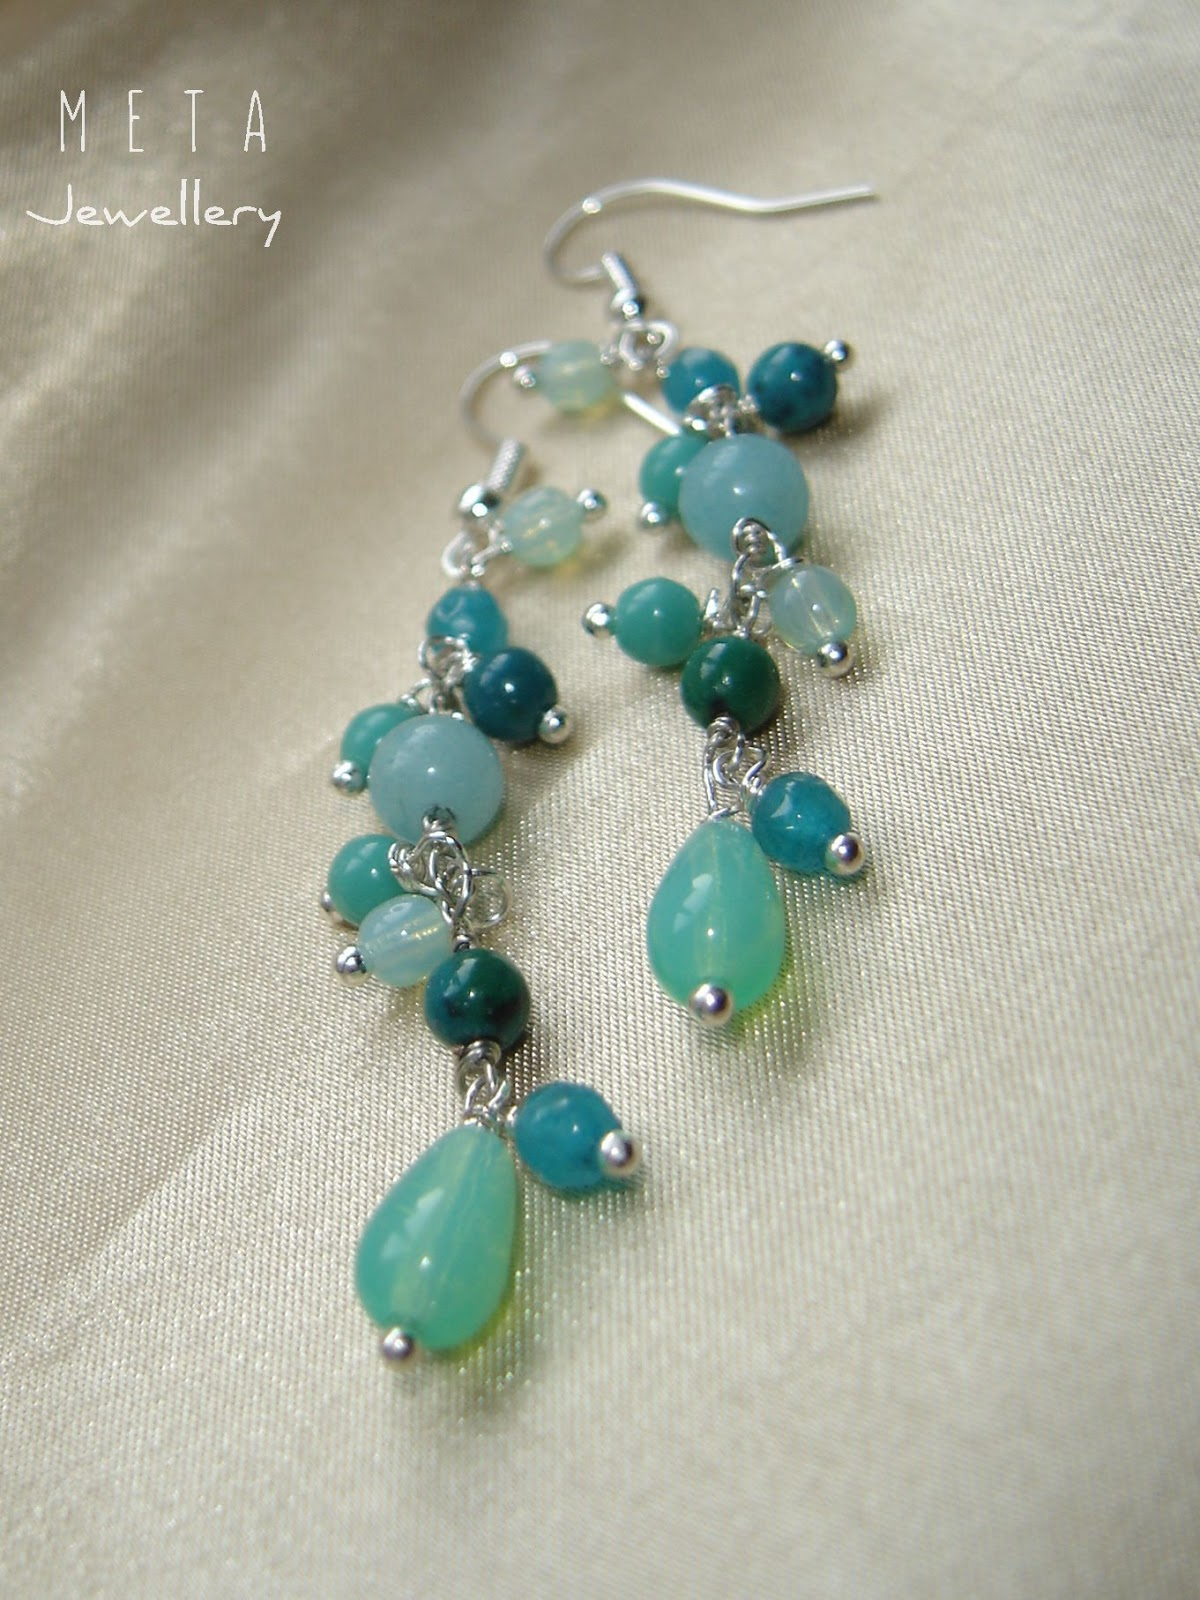 c178a97db53c Wire wrapped earrings with blue amazonite, agate, chrysocolla and czech  glass beads